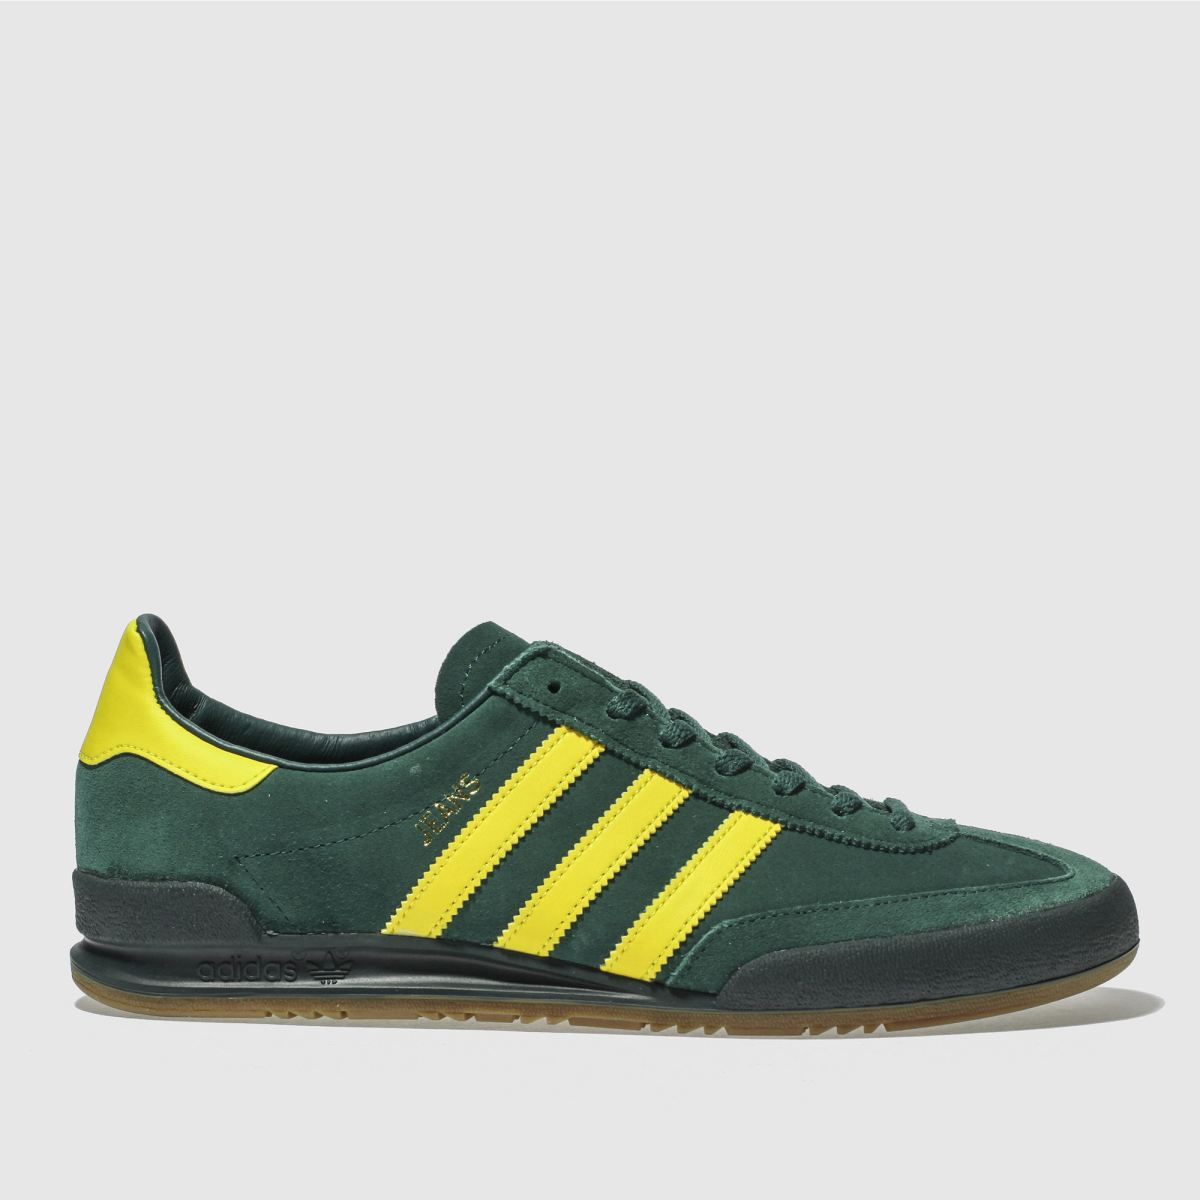 Adidas Dark Green Jeans Trainers